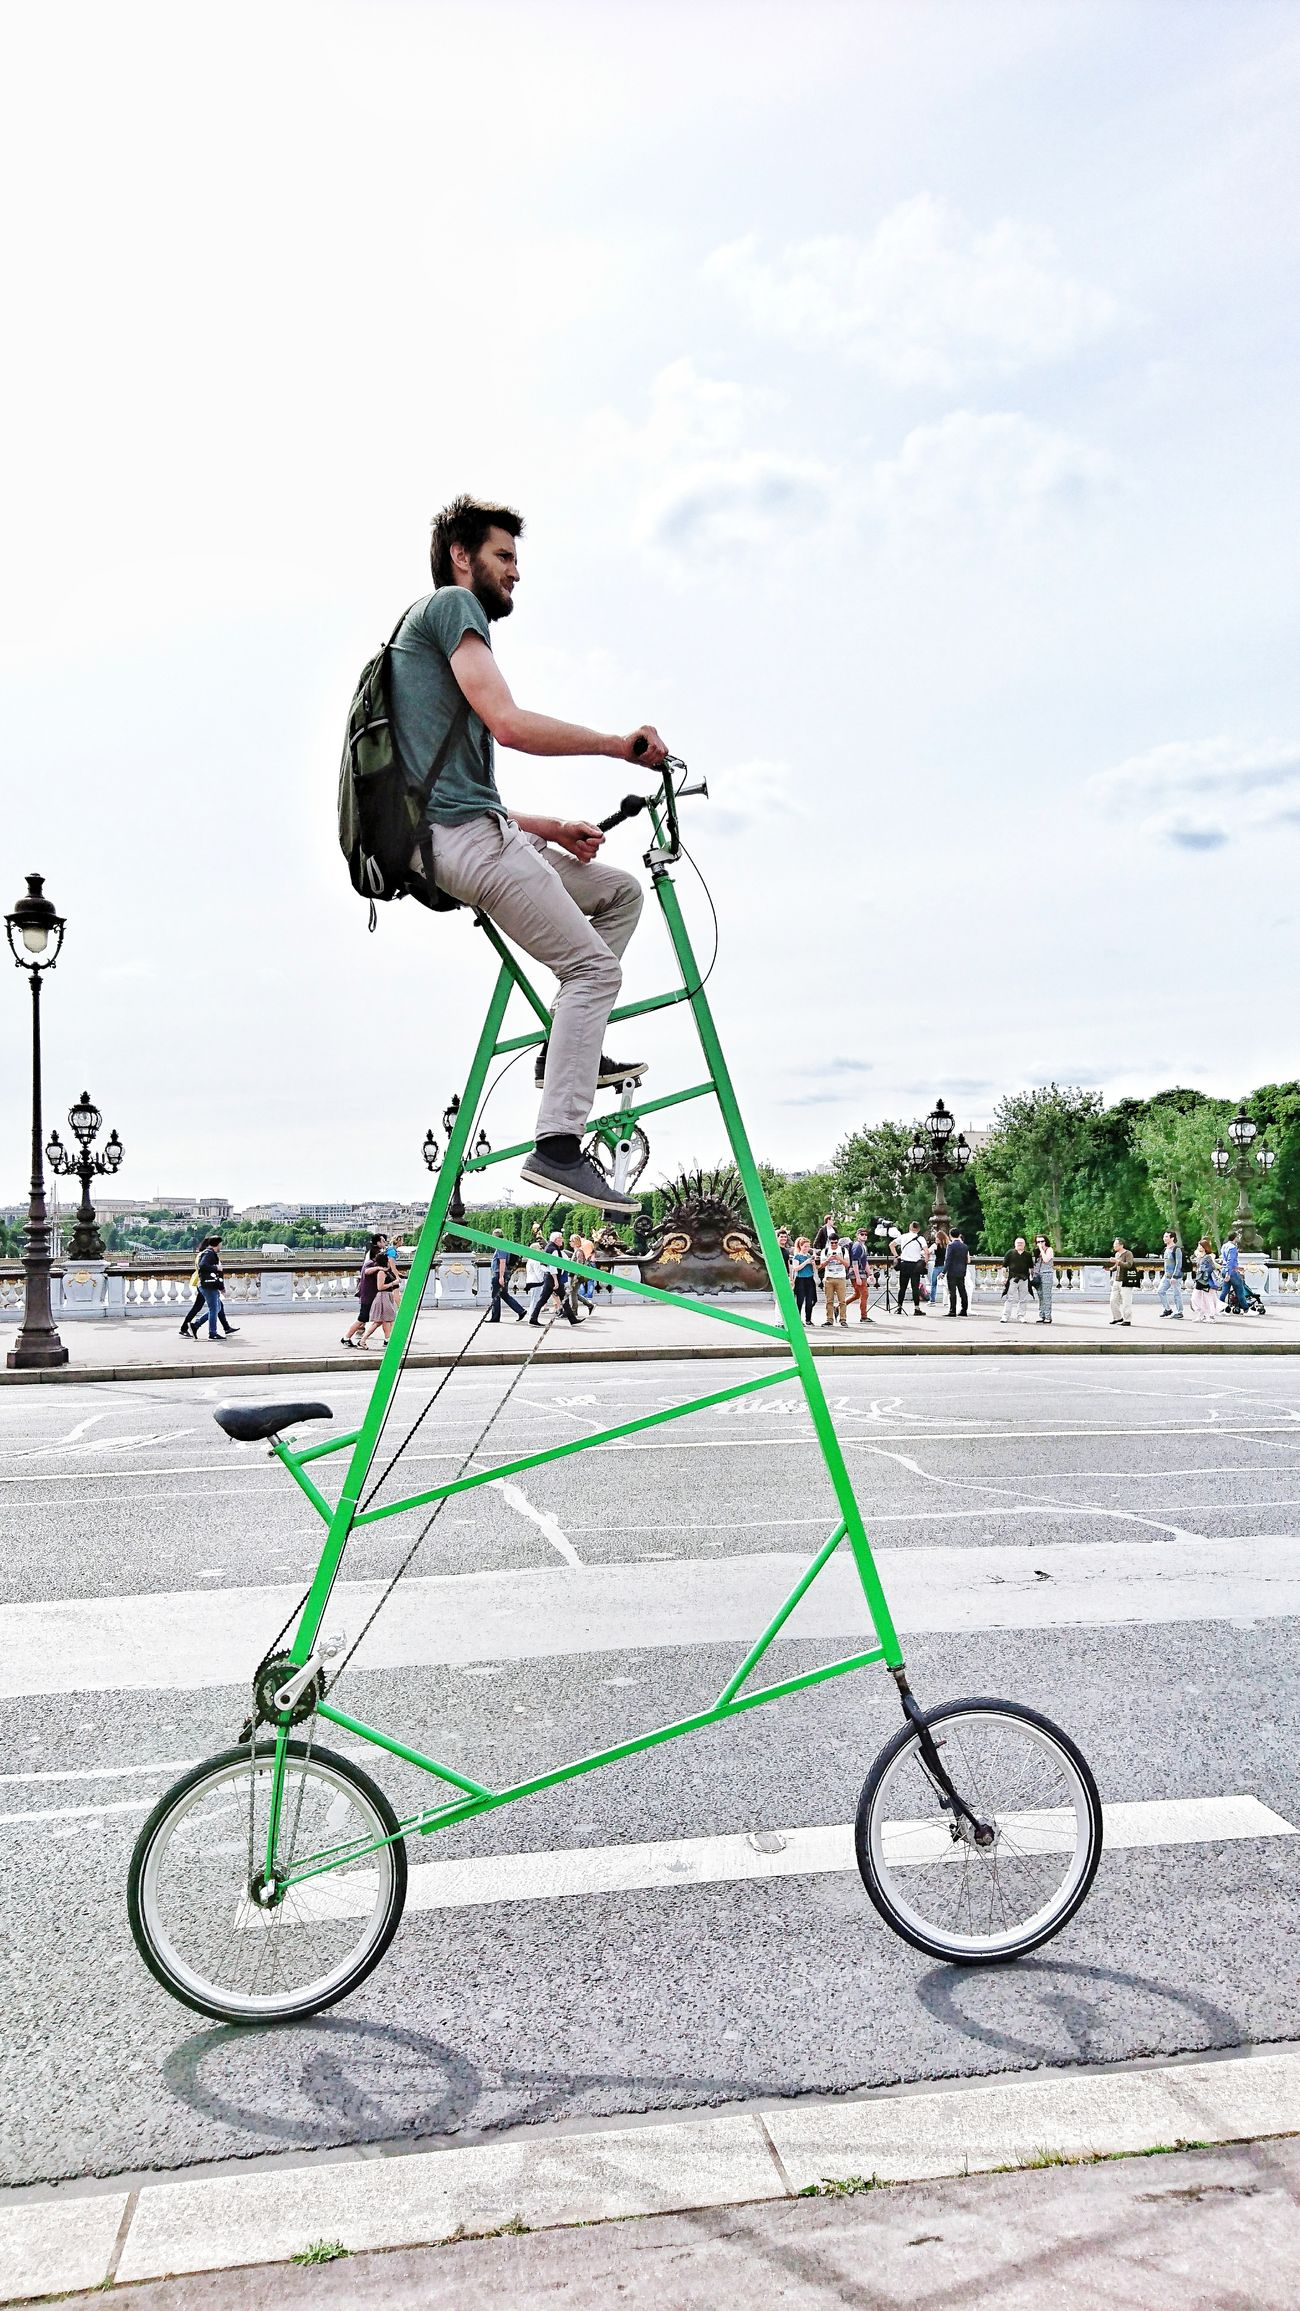 One Man Only Full Length One Person Outdoors Sport Golf Spraying Paris Pont Alexandre III Alexander Bridge Bike Velo Street Streetphotography Woow Amazing Unsusual Original Retro Vintage A Man His Bike Happiness Cityscape City Life City Street Live For The Story The Street Photographer - 2017 EyeEm Awards Place Of Heart